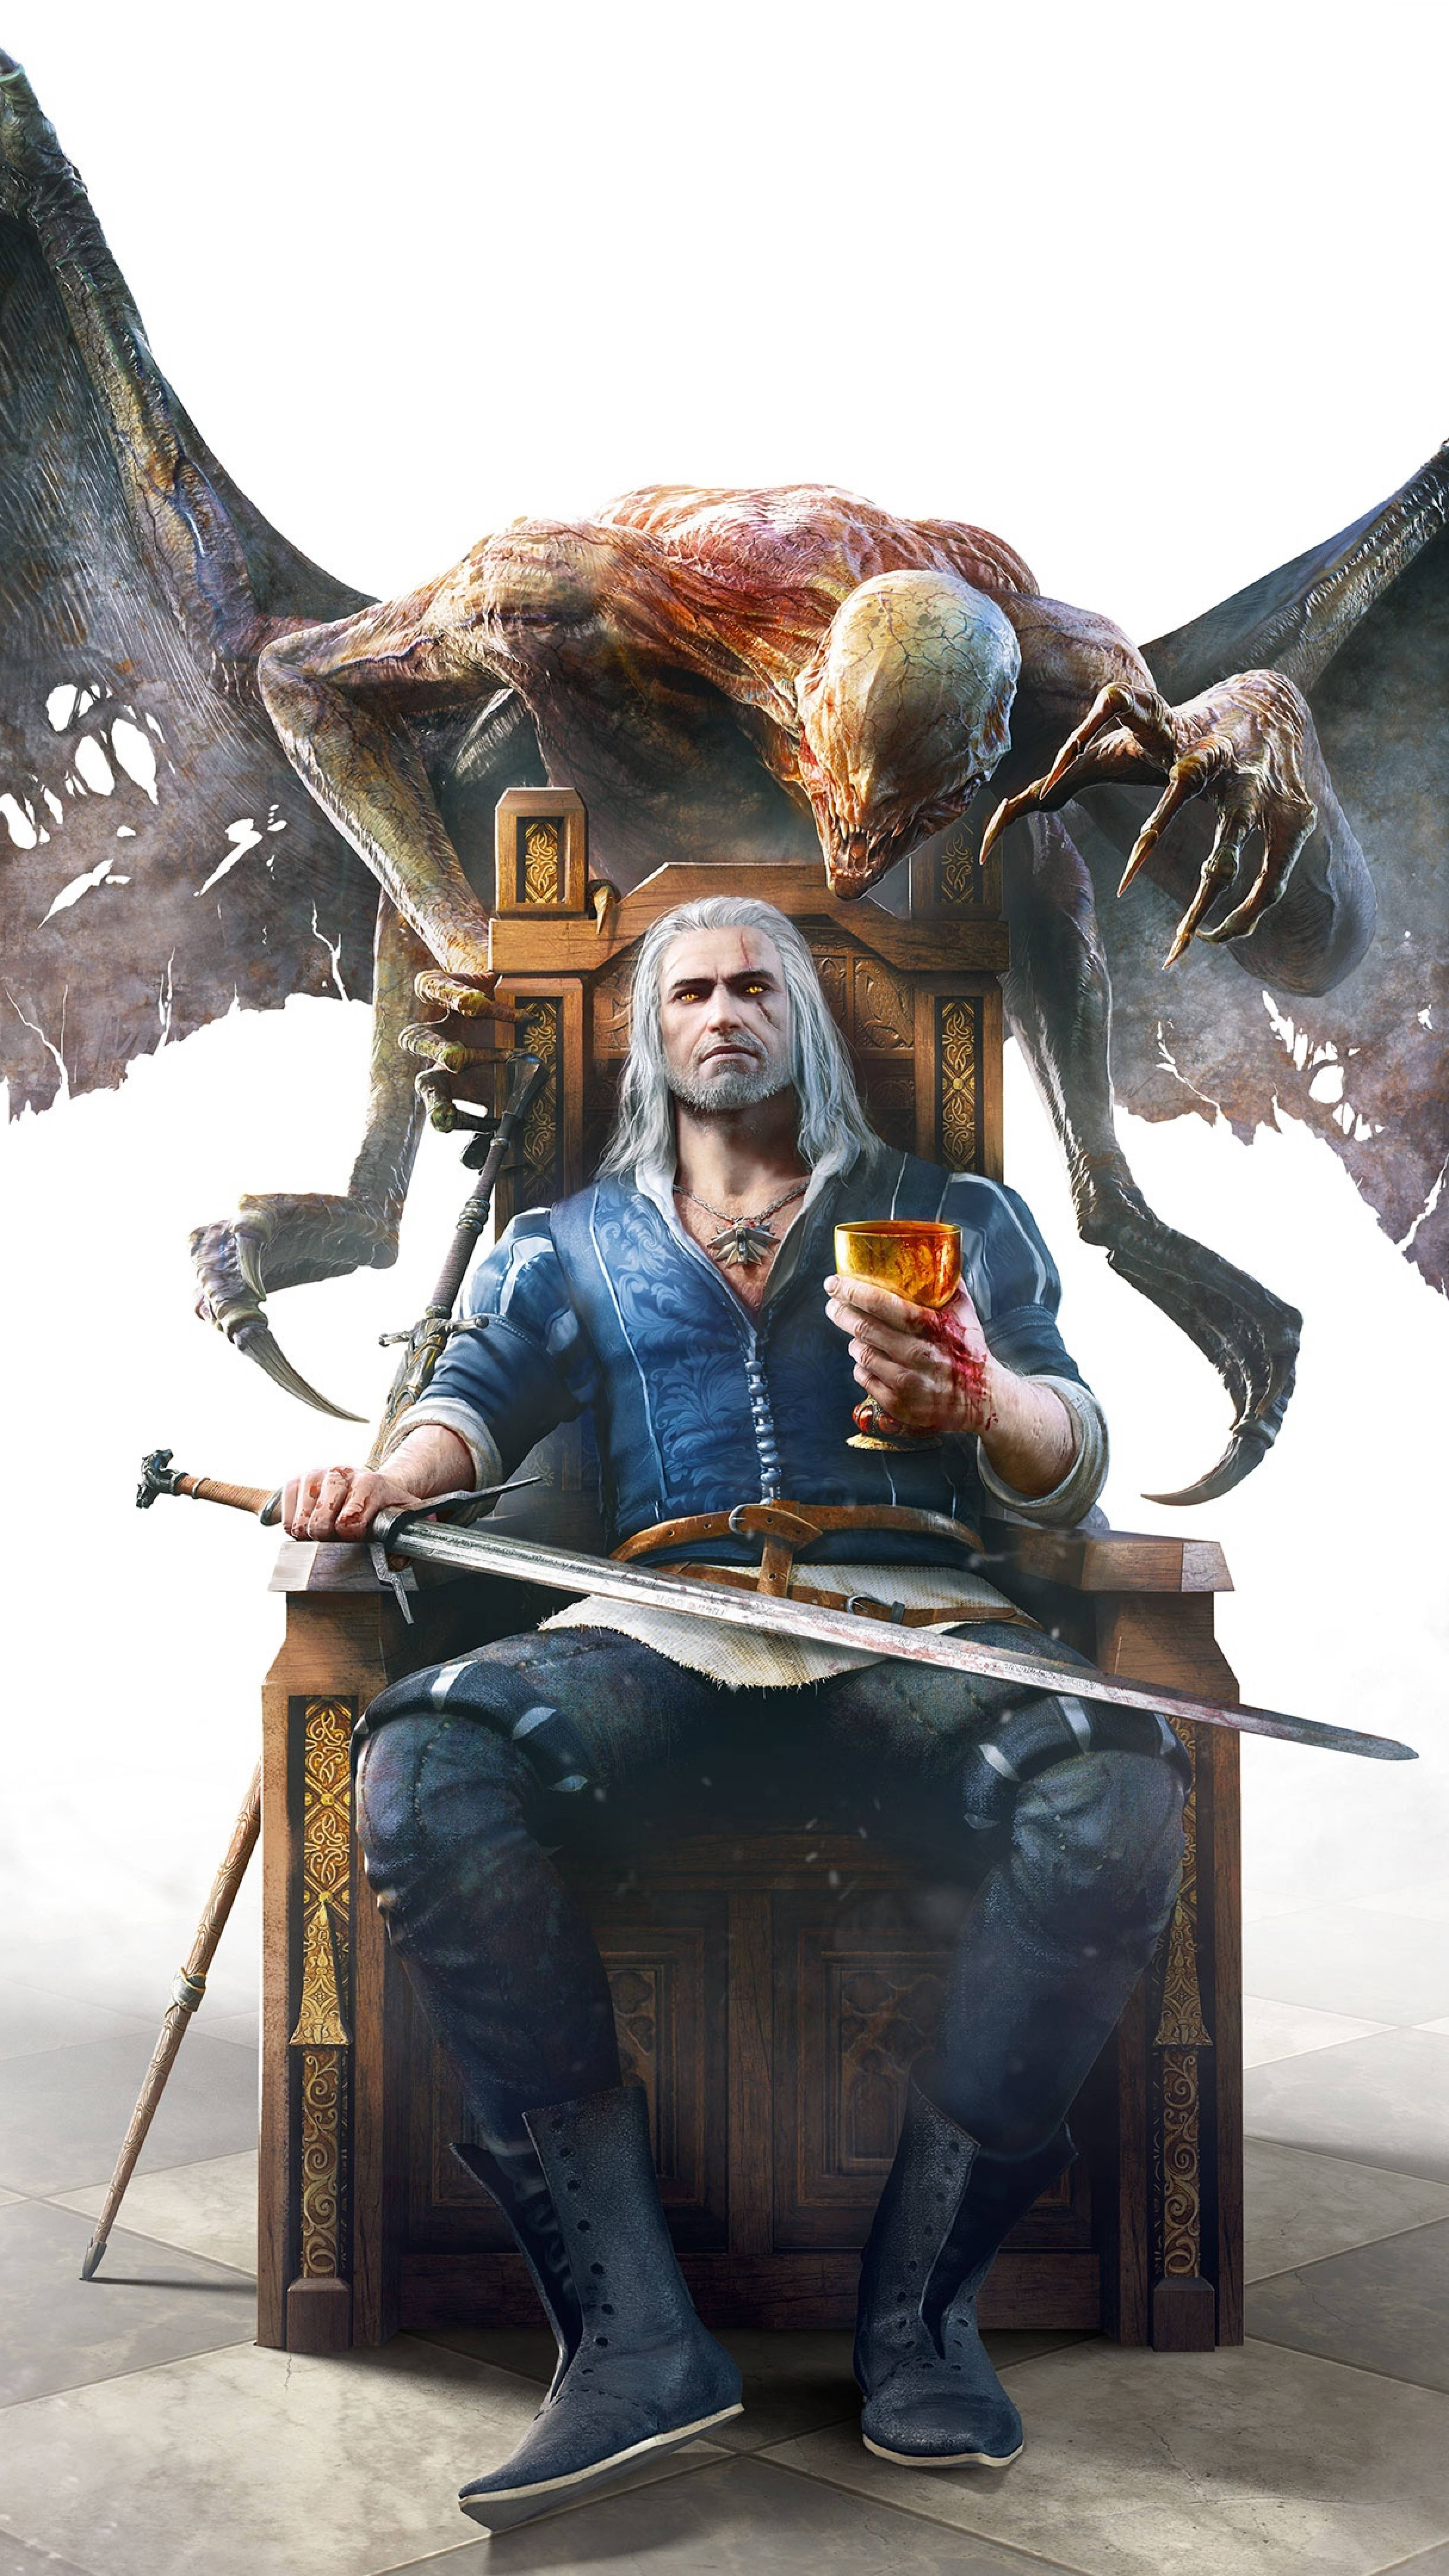 1080p and some 4k wallpaper for phones in 2019 Witcher The 5760x10240